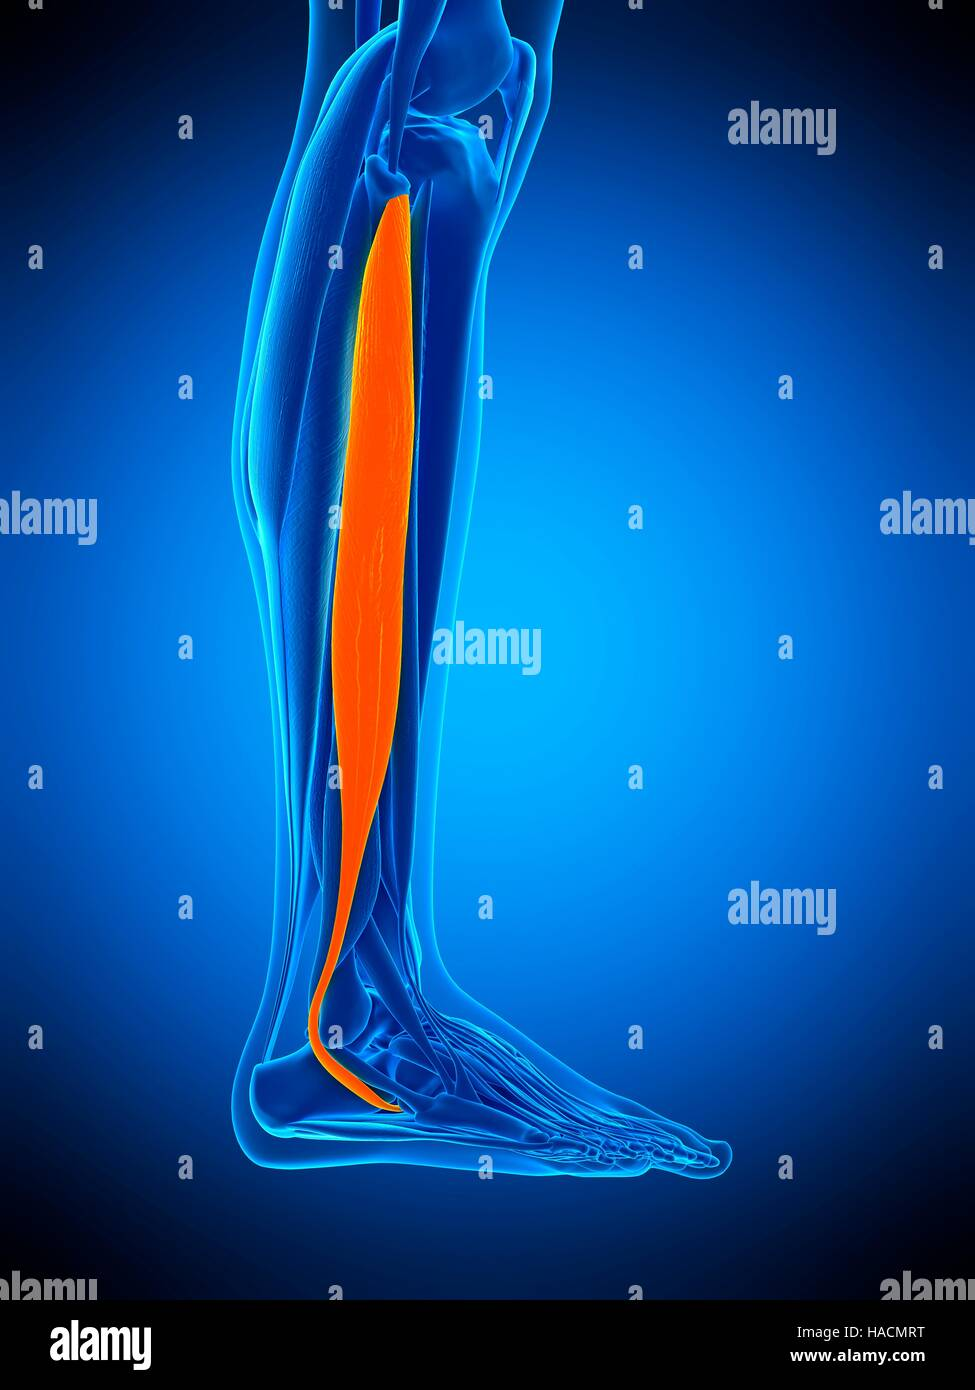 Illustration Of The Peroneus Longus Muscle Stock Photo 126898908